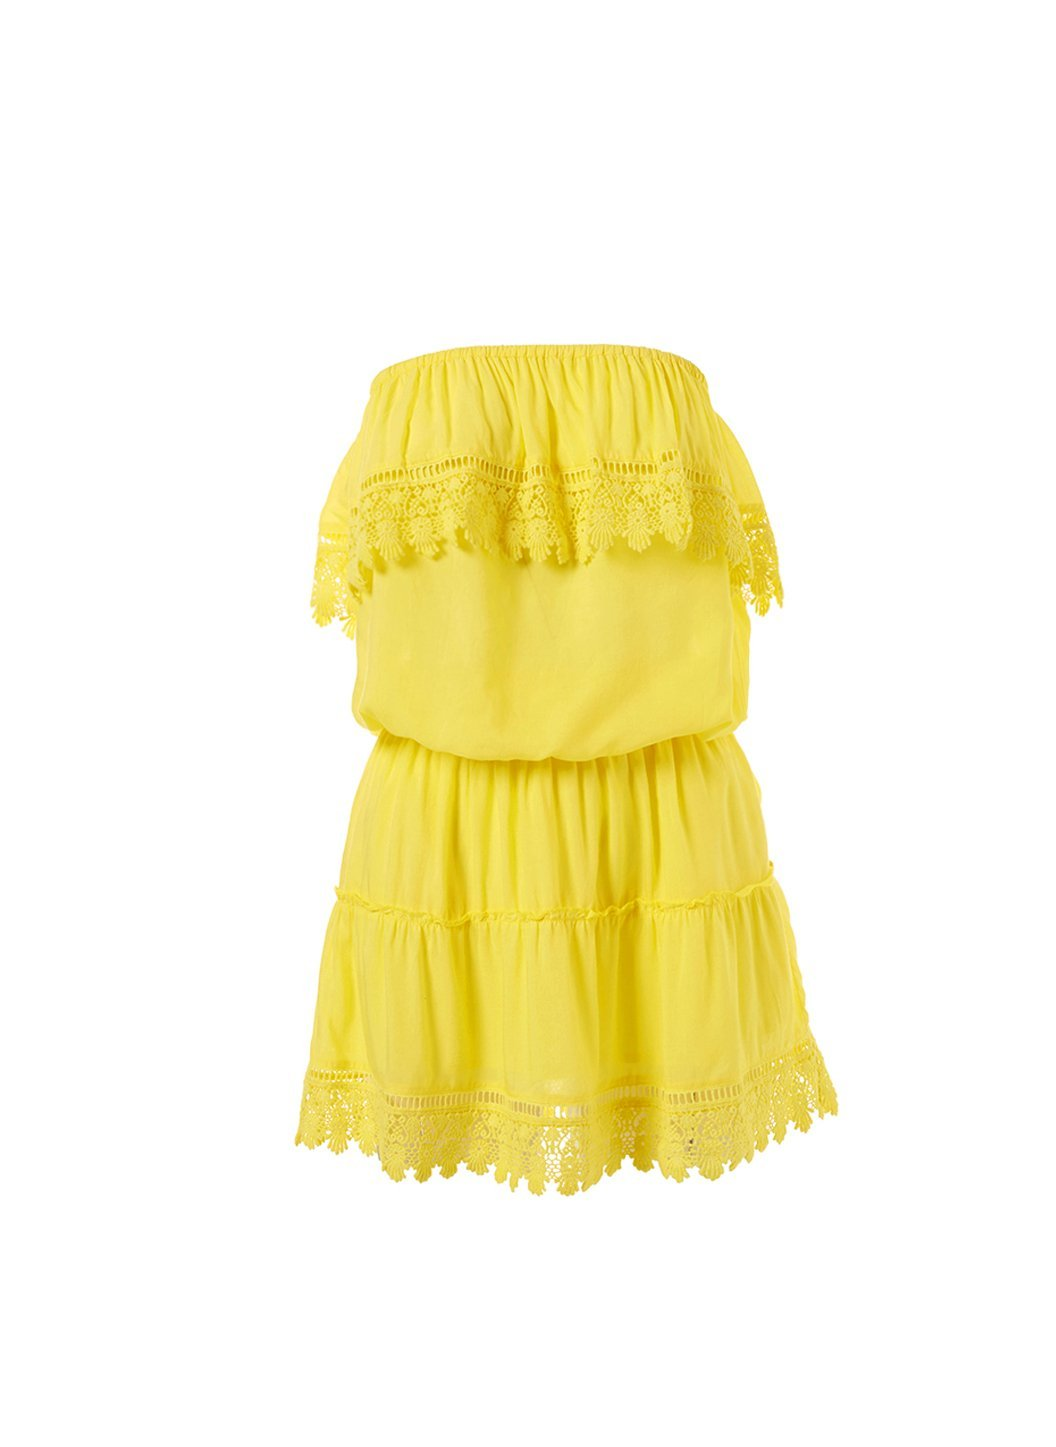 joy yellow bandeau embroidered frill short dress 2019